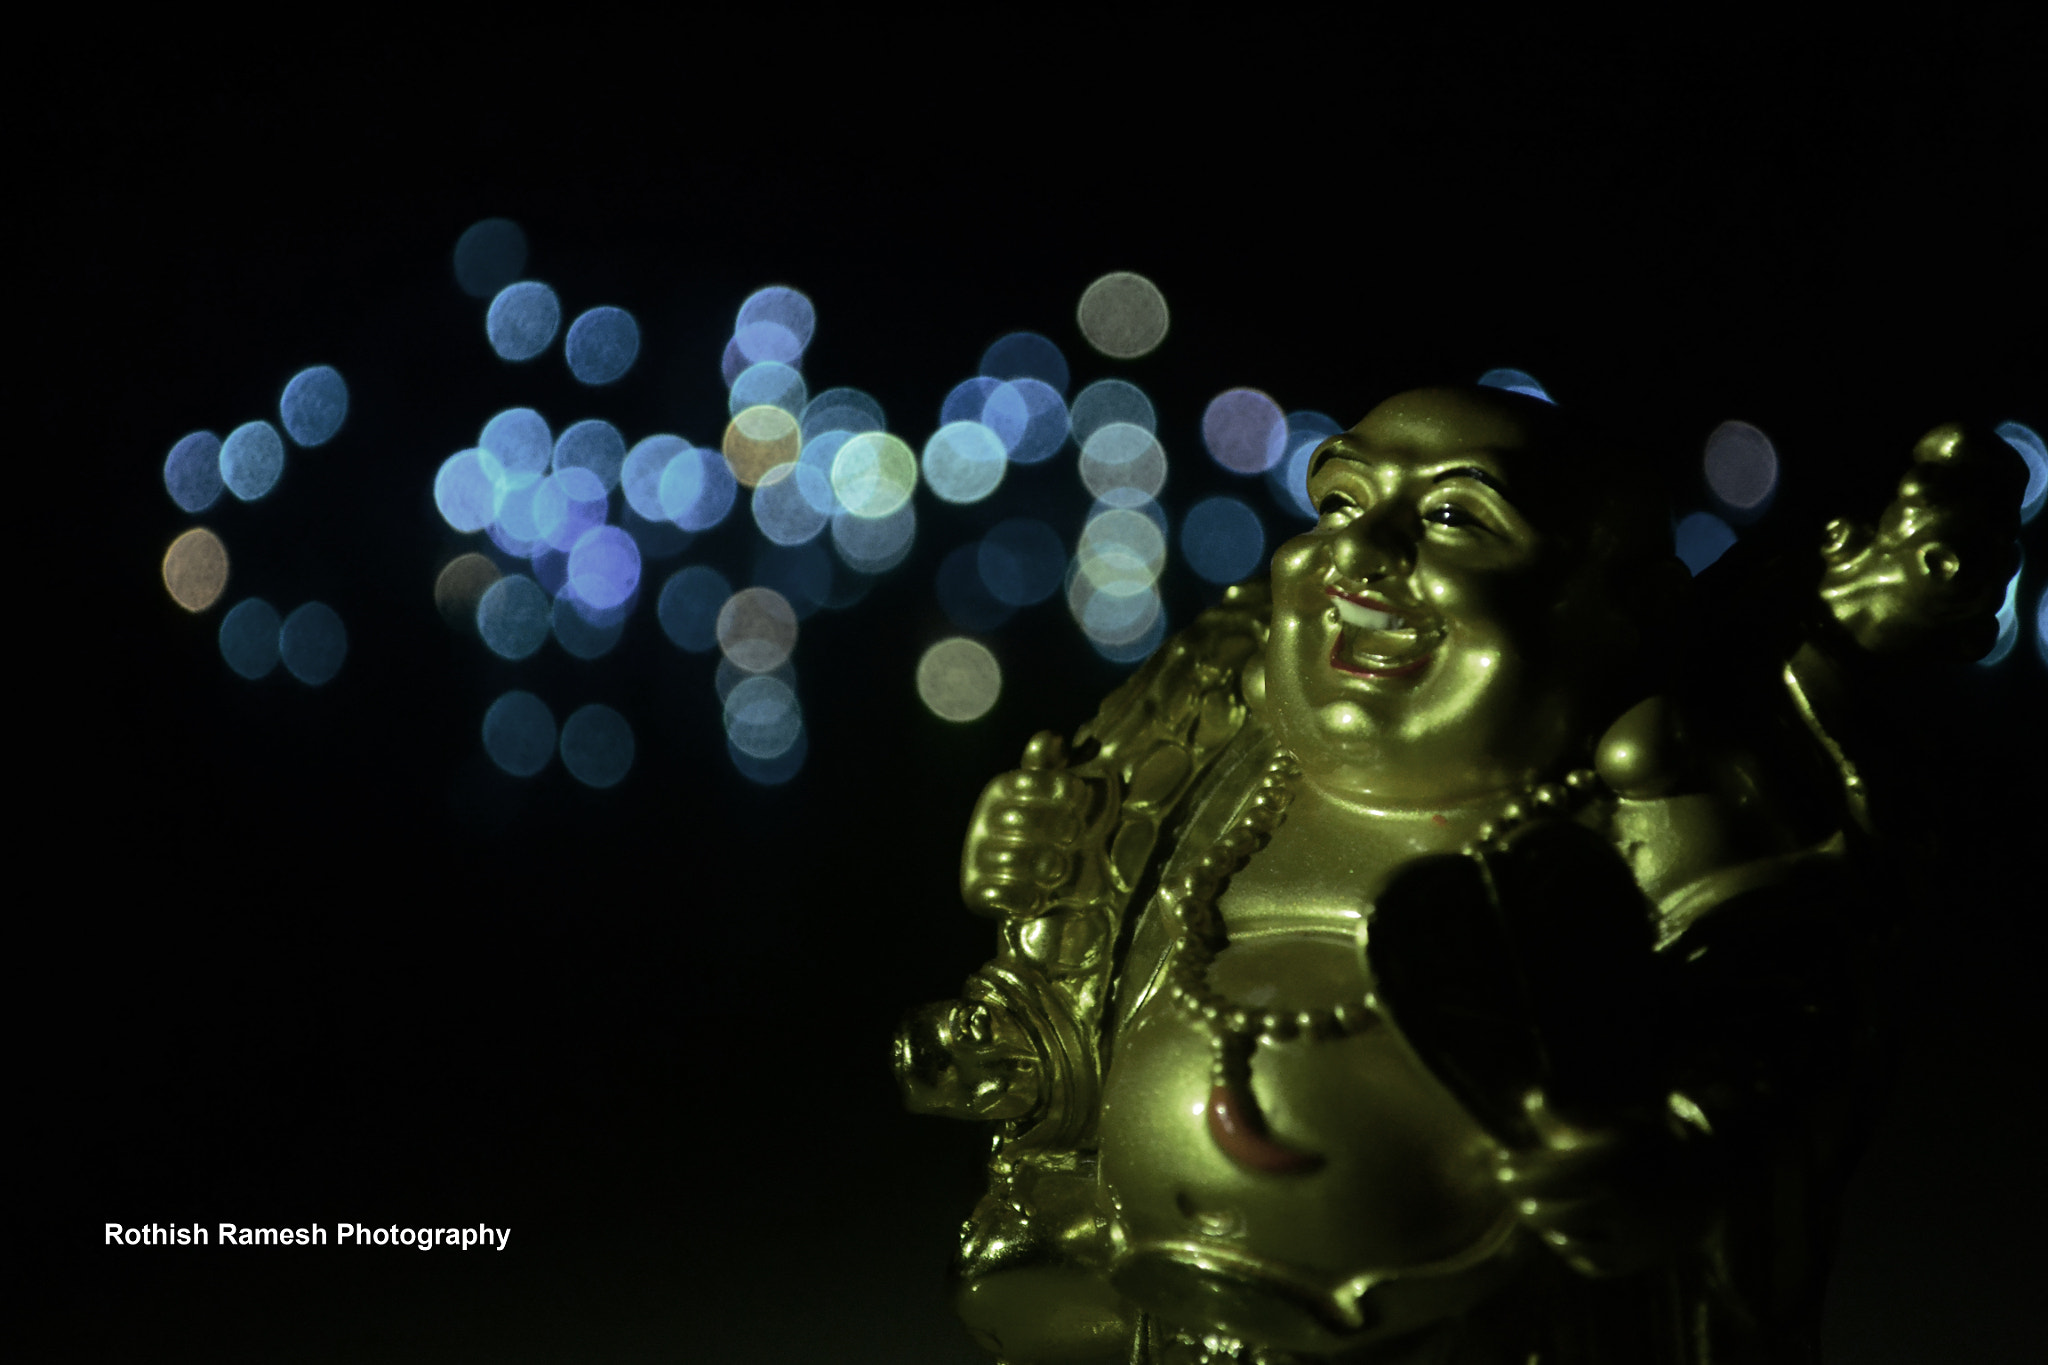 Photograph Budai I by Rothish Ramesh on 500px